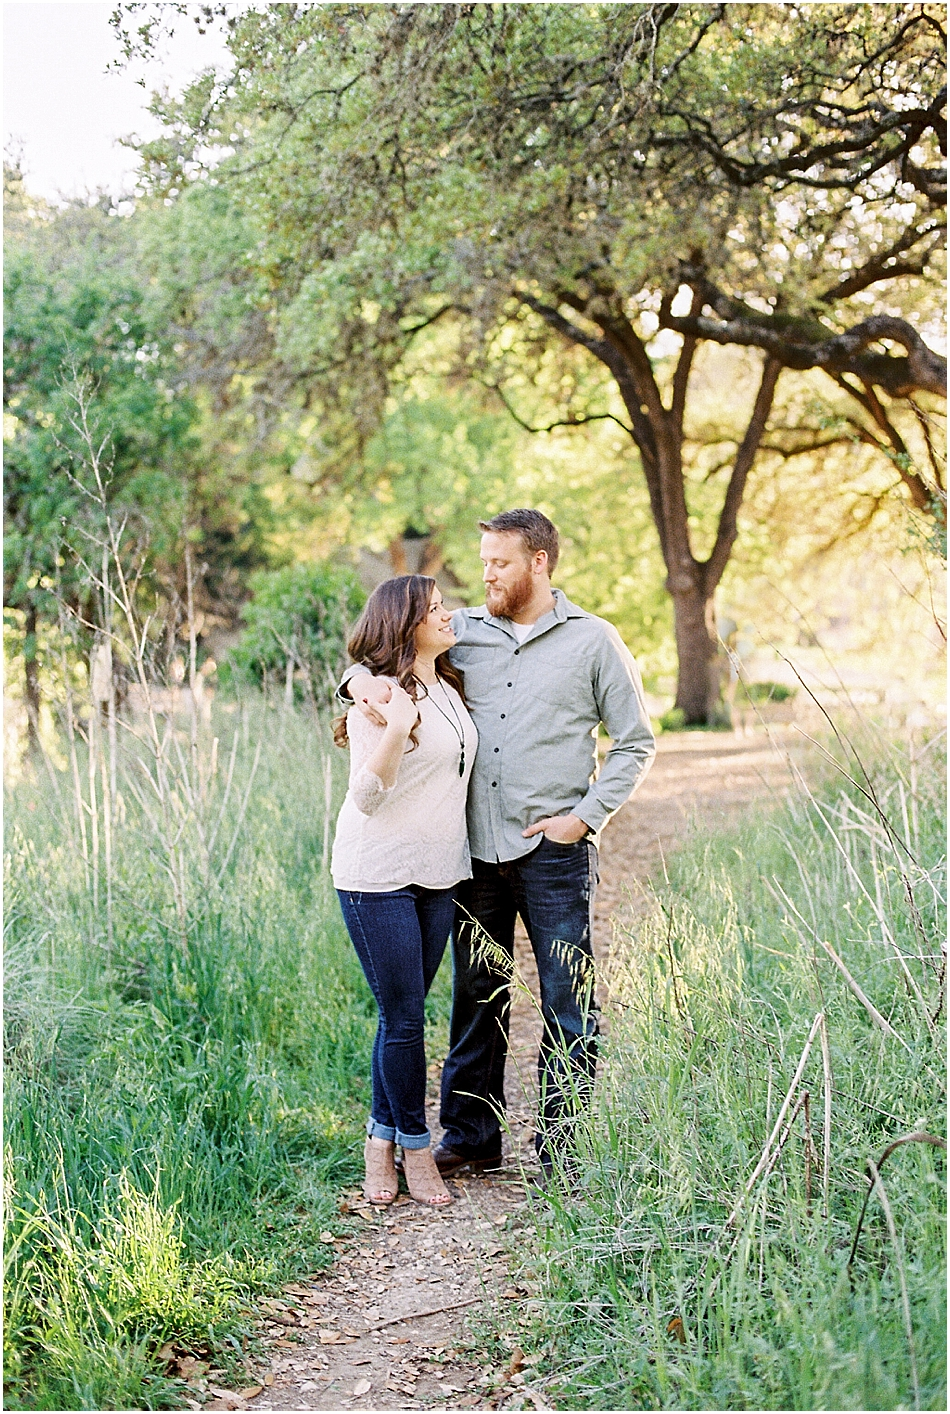 Brooke + Nick | Fine Art Creek Side Engagement | Film | Emilie Anne Photography-28.jpg